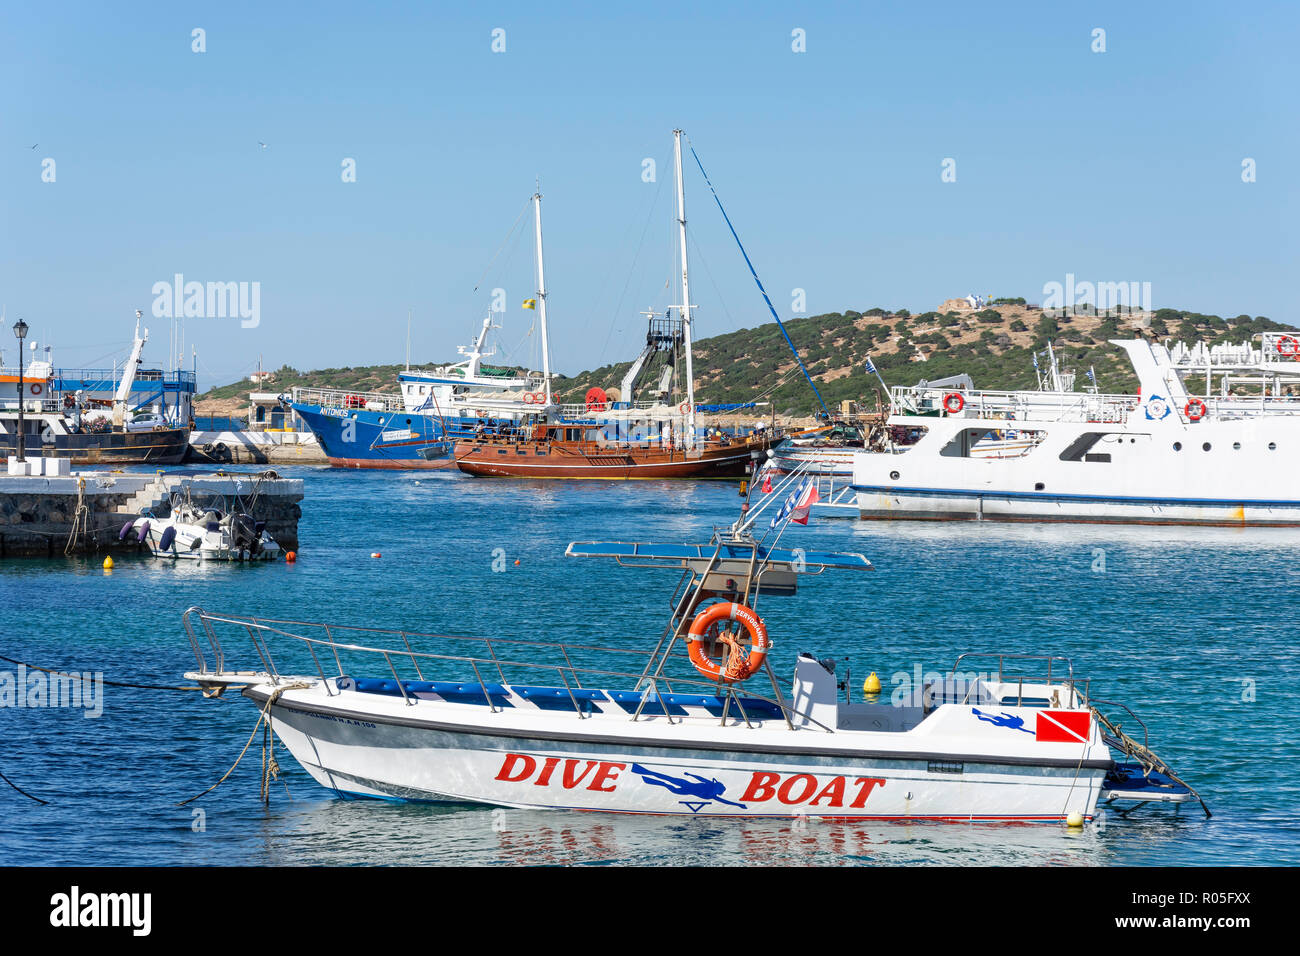 Excursion and dive boats in harbour, Agios Nikolaos, Lasithi Region, Crete (Kriti), Greece - Stock Image